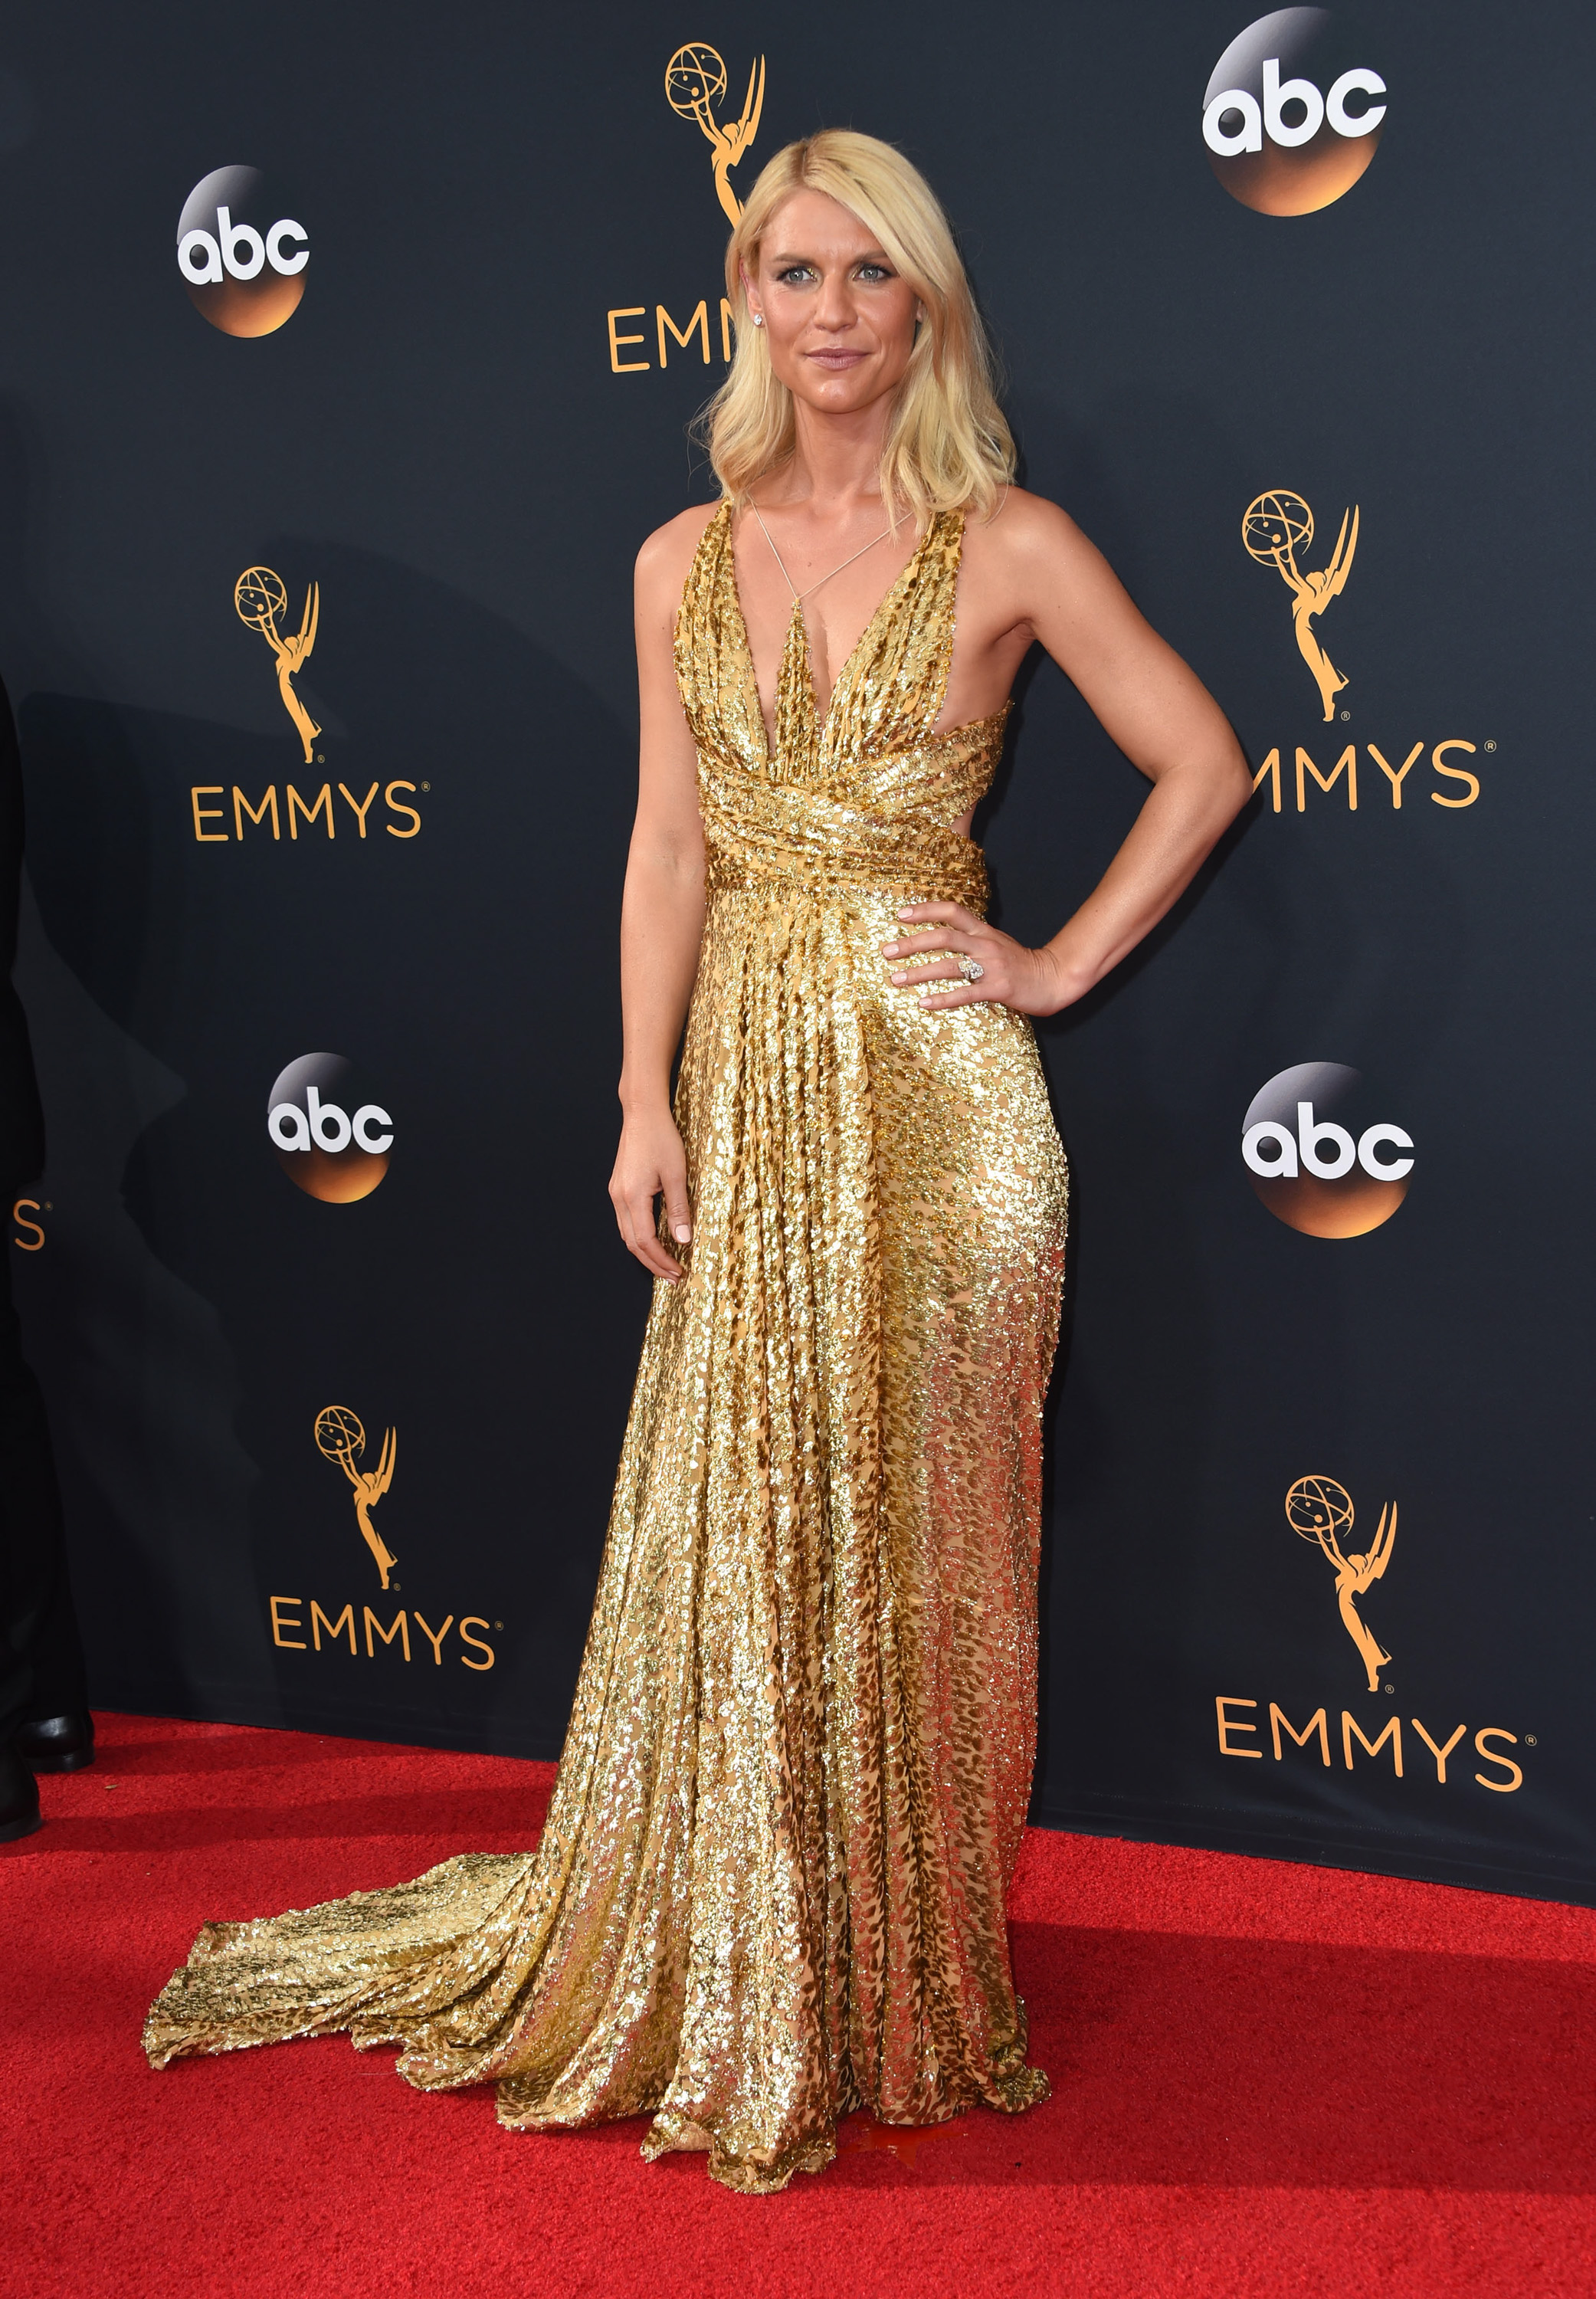 Emmys Fug and Fab: Claire Danes in Schiaparelli